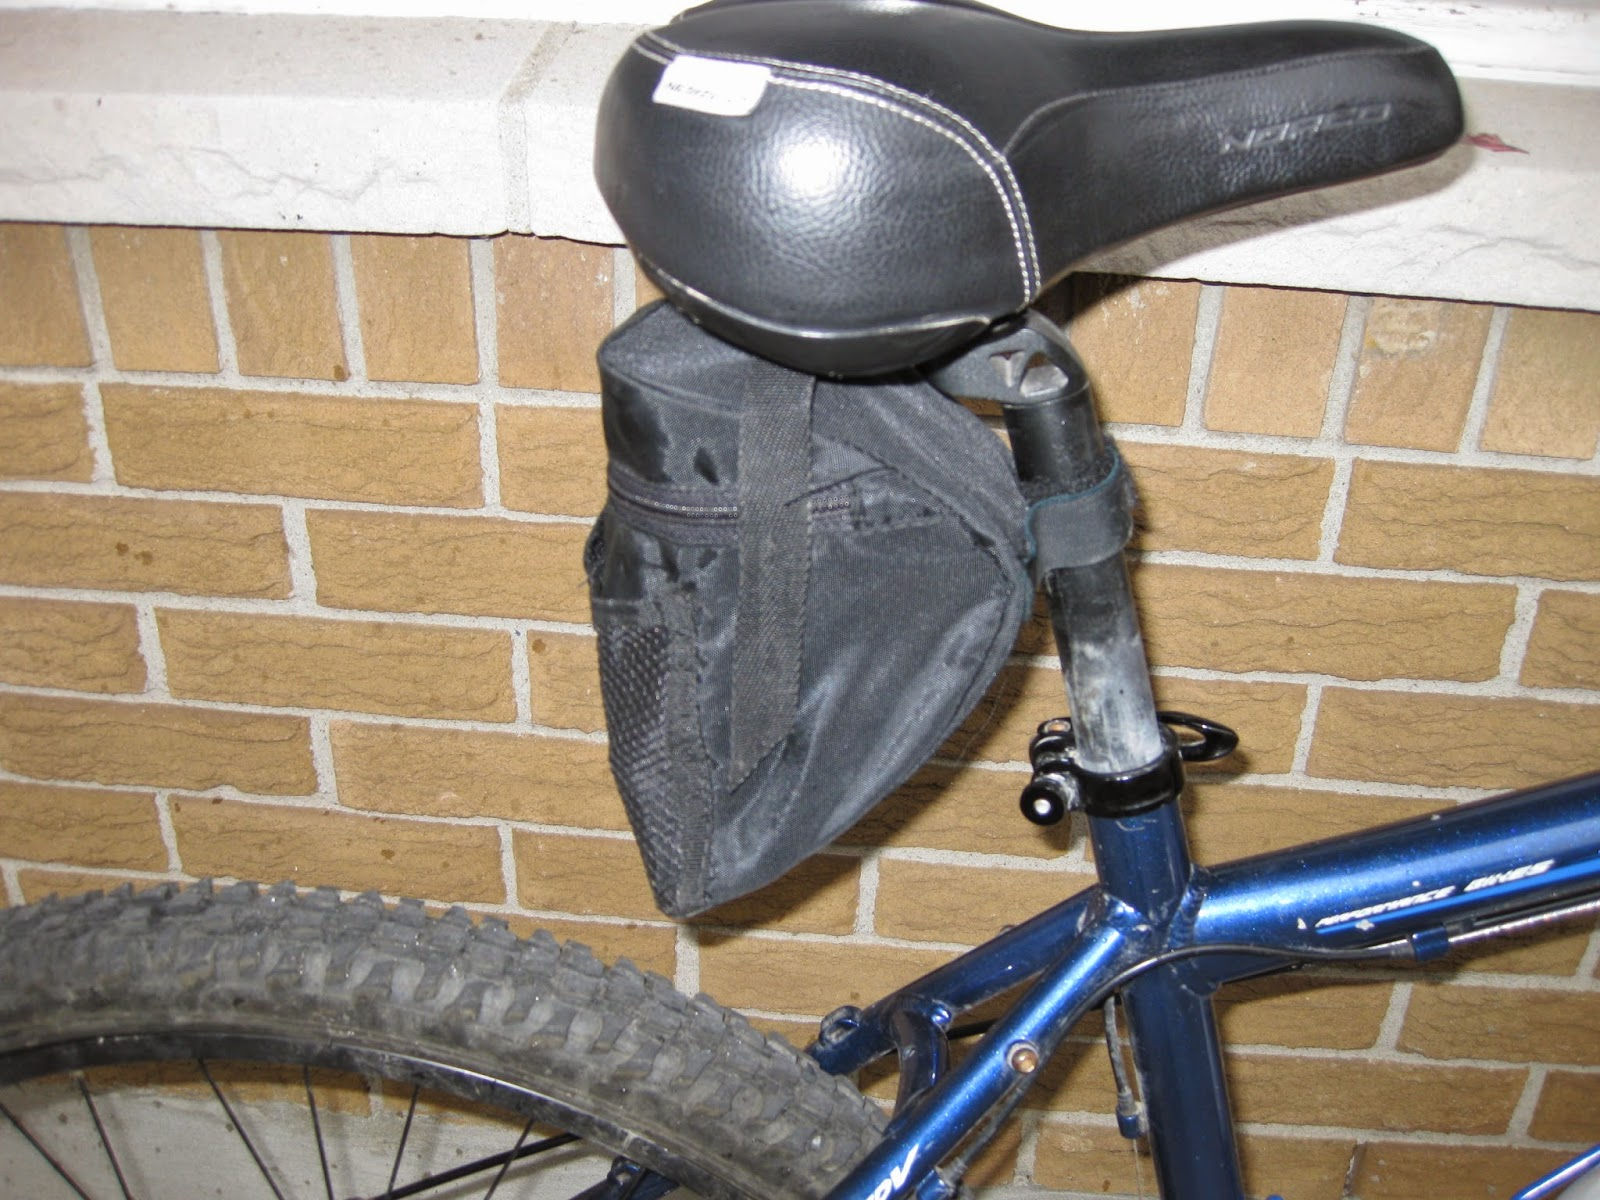 An old bicycle saddlebag that's seen better days.